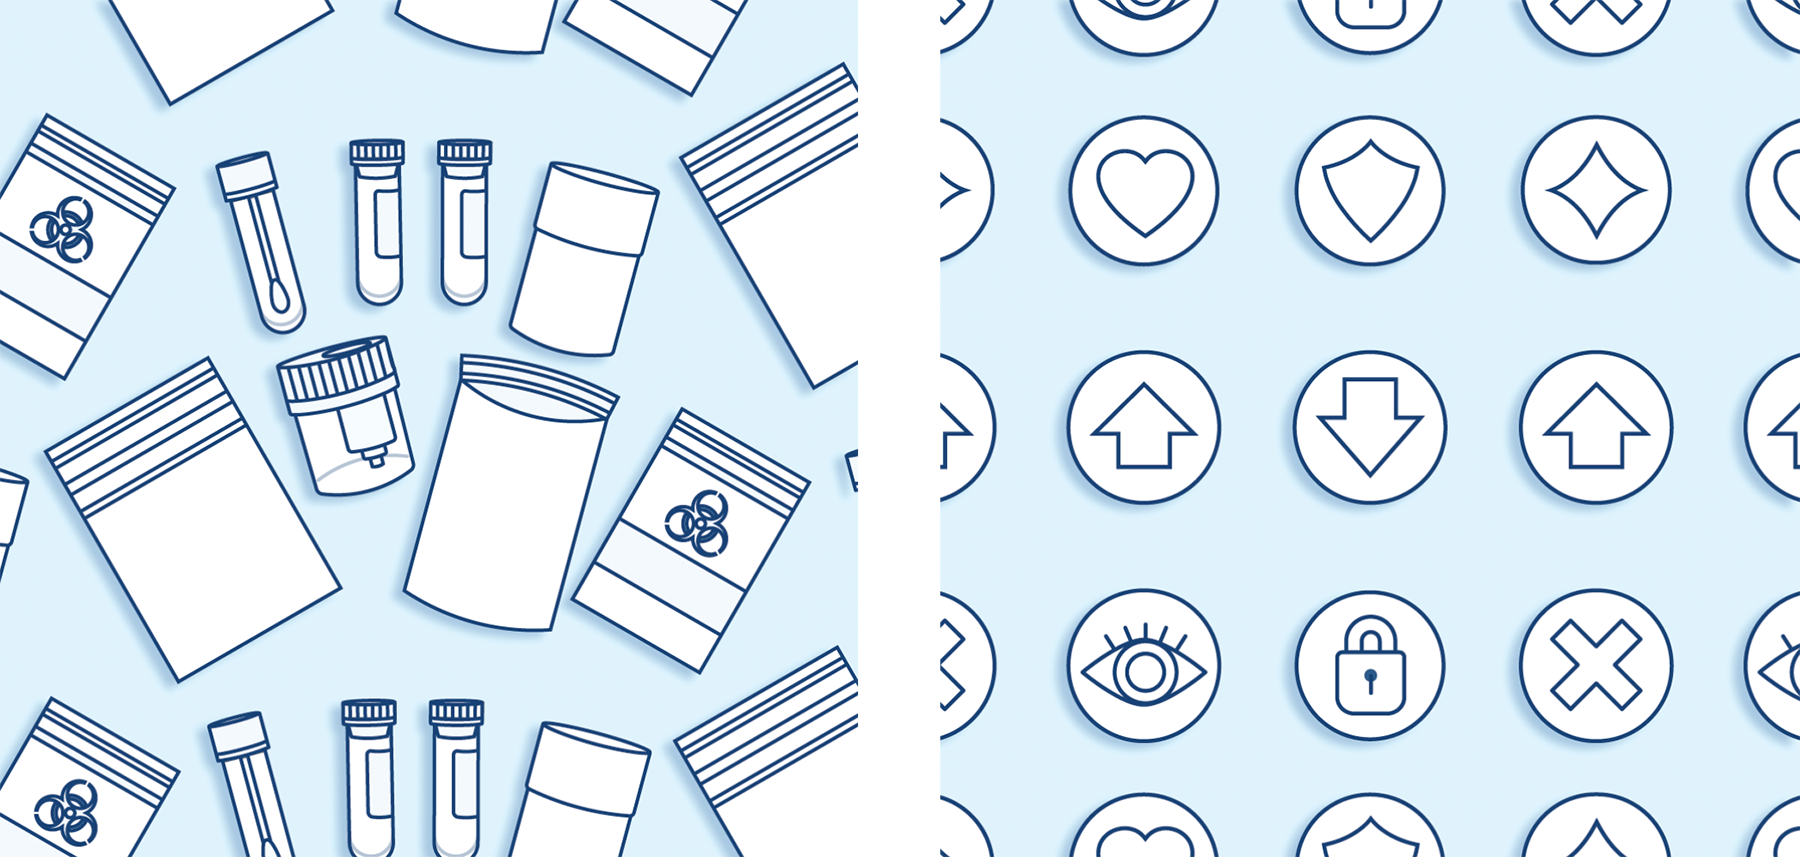 Showcase of some custom icons for ShareTek including a complete drug testing kits and some icons.